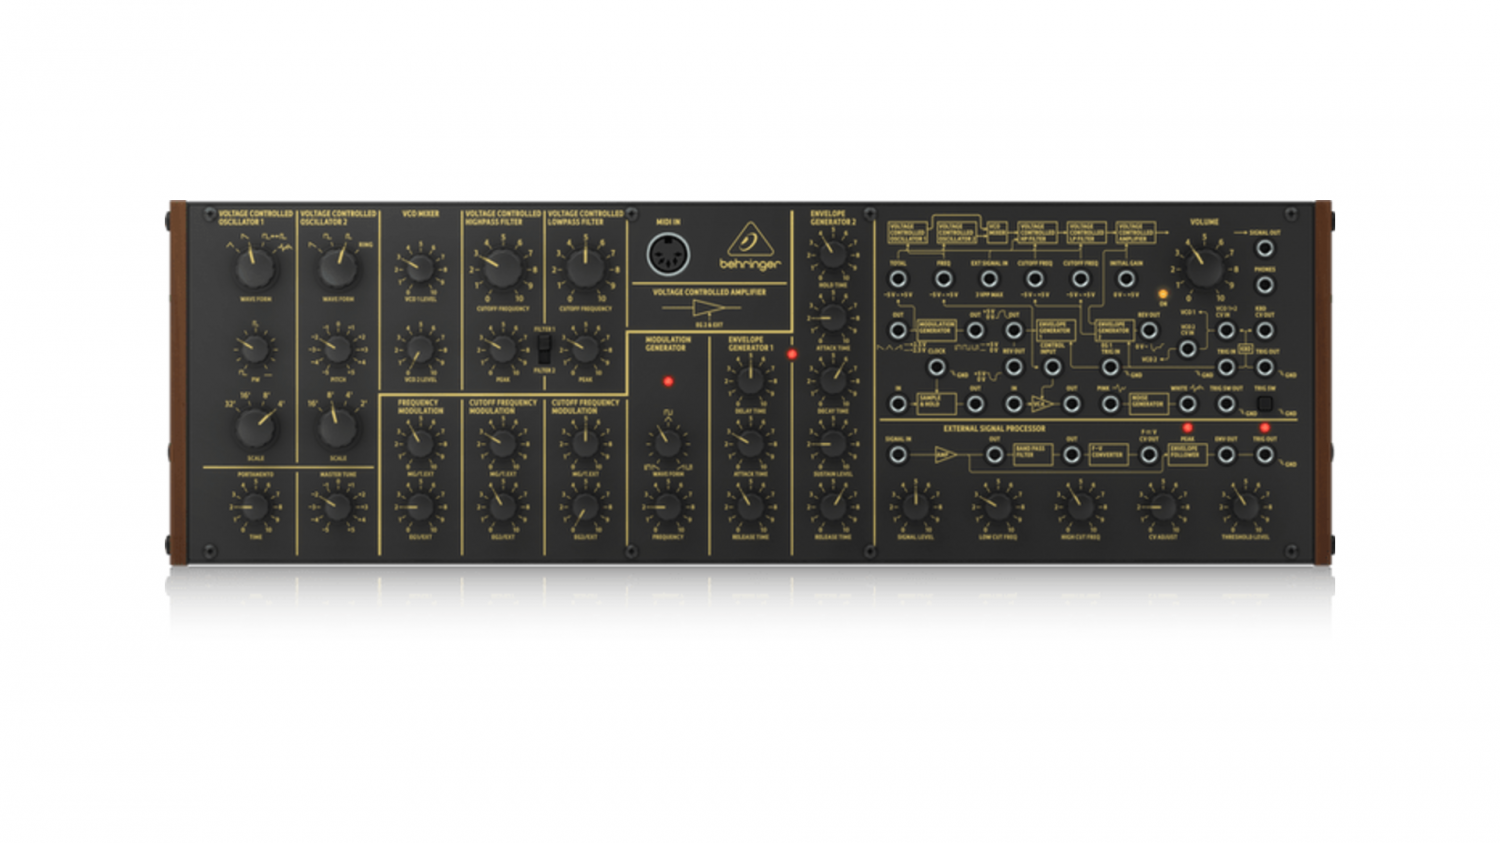 Updates on the Behringer K-2 could be indicative of a superior clone